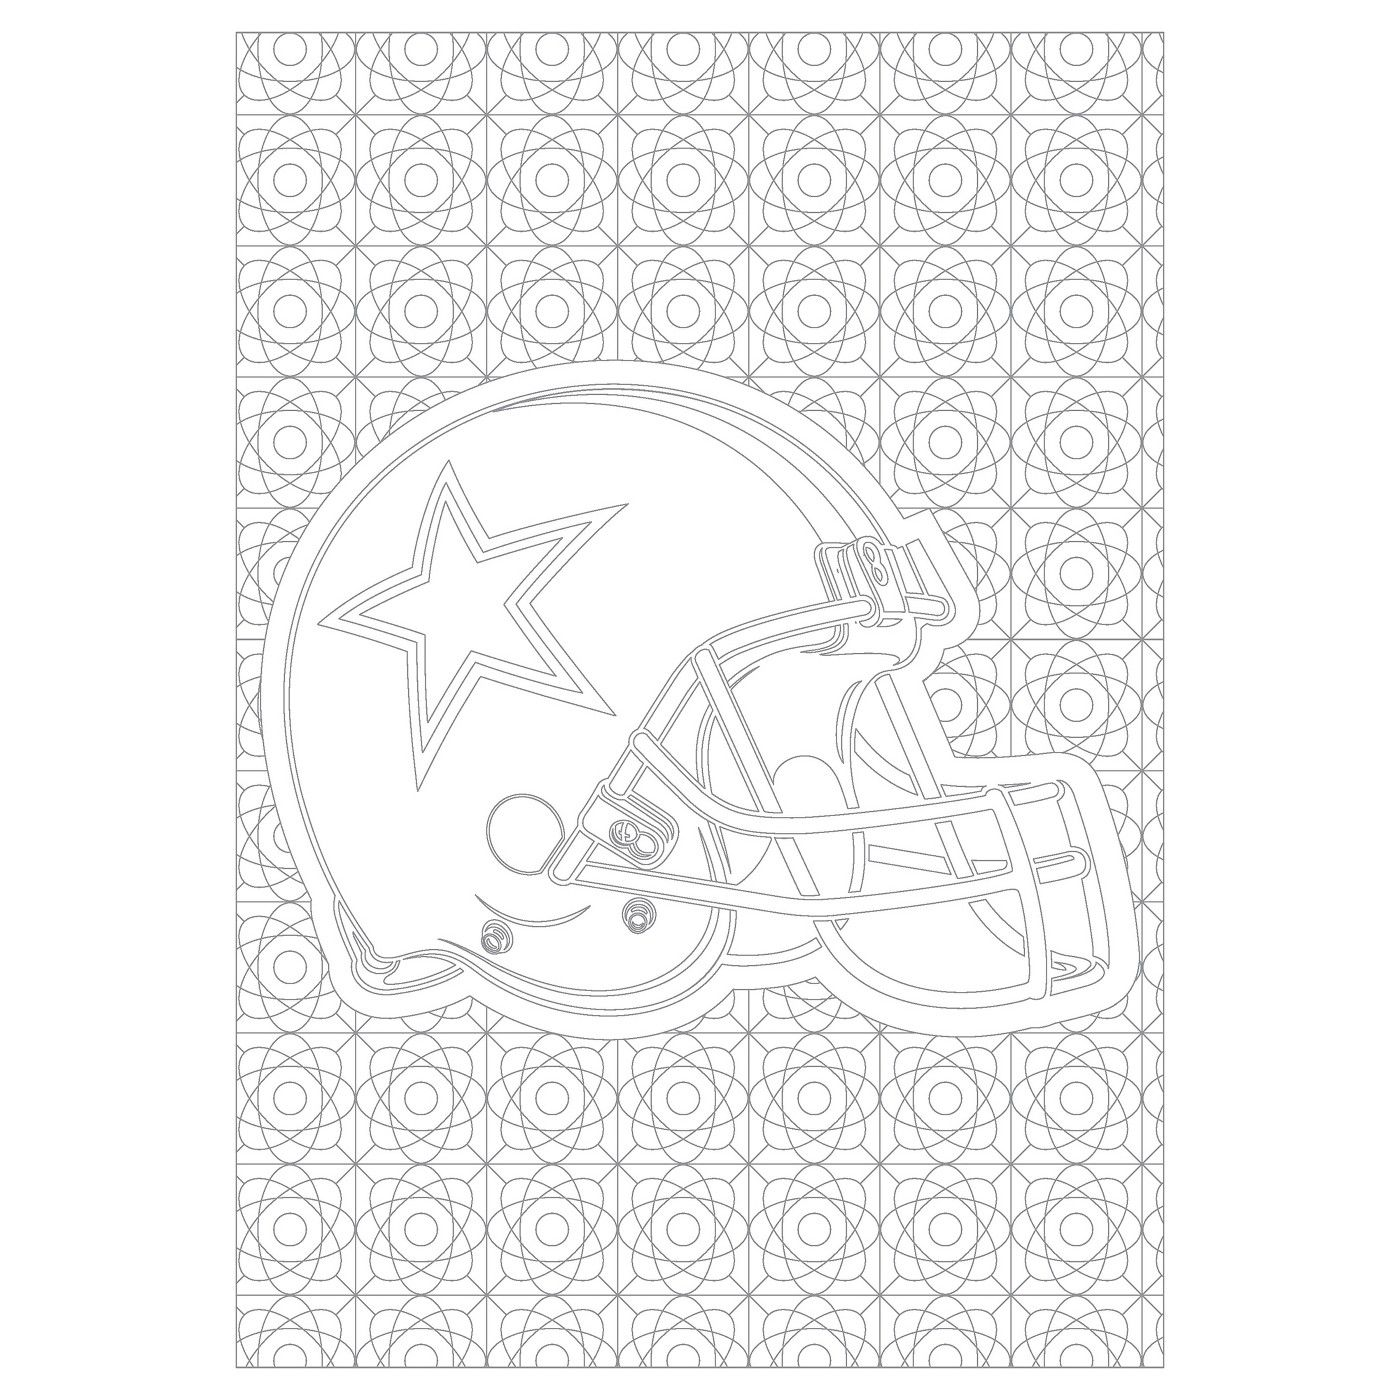 NFL In The Sports Zone Adult Coloring Book image 5 of 6